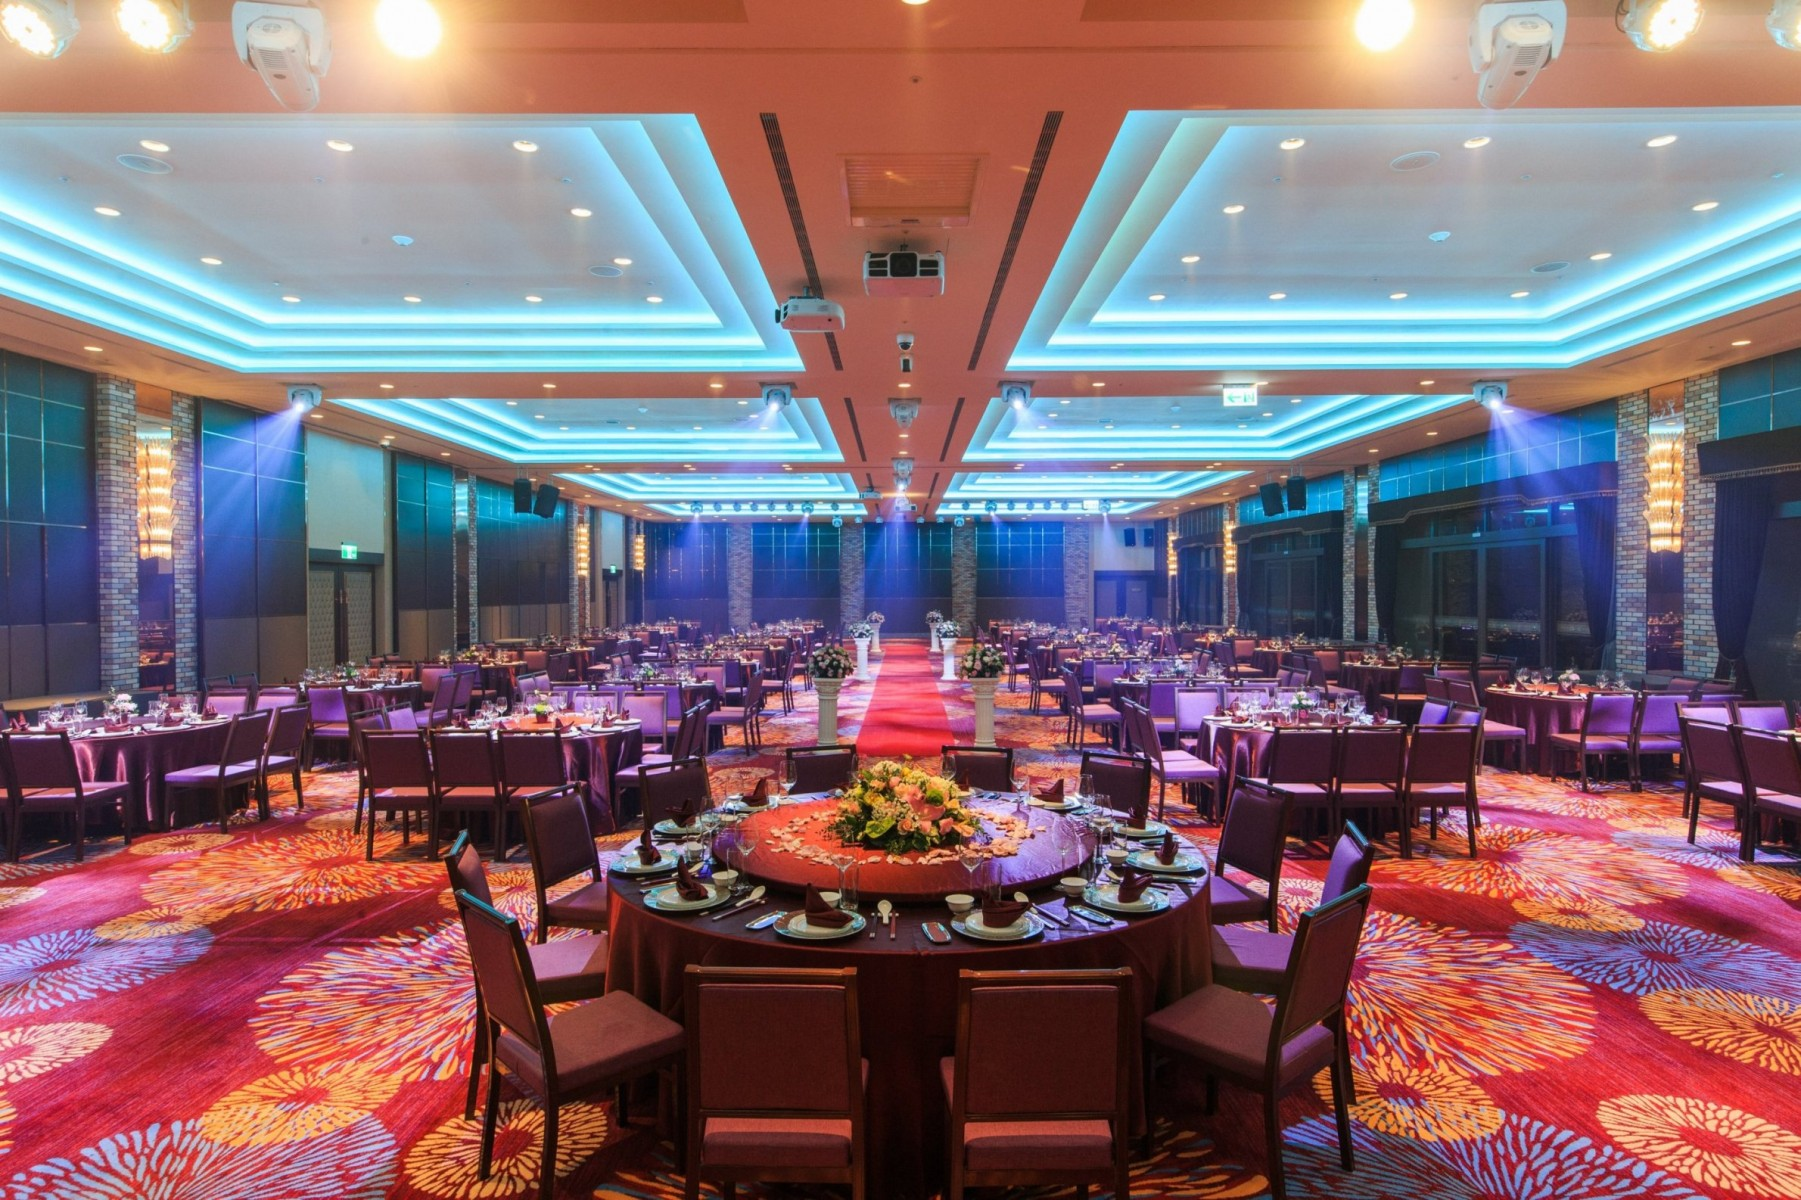 banquet-hall-for-wedding-event